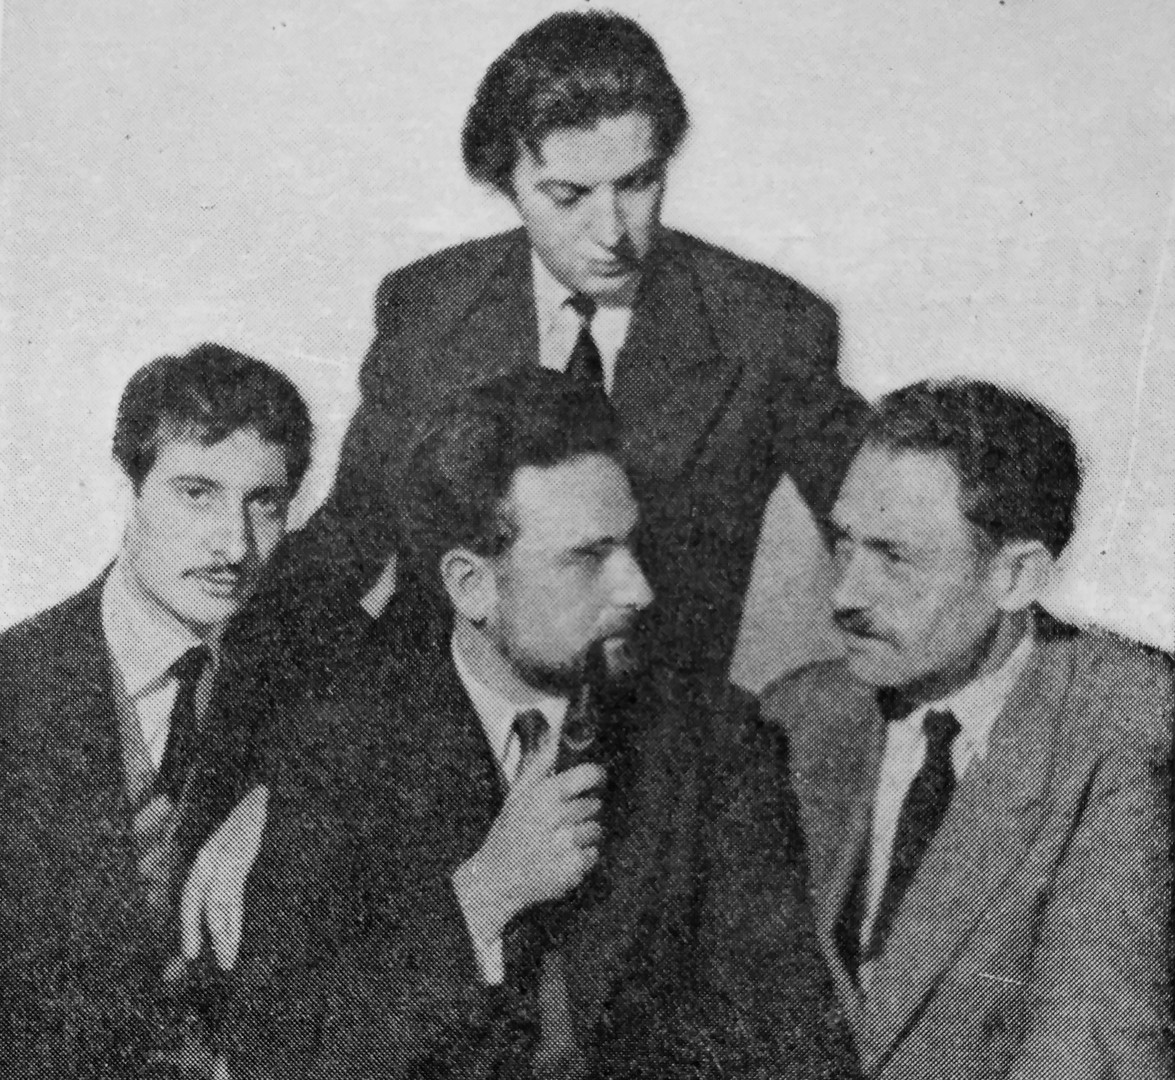 """The """"Groupe 84"""", created in 1953 by the composers (from left to right) Luc Ferrari, Yves Ramette (standing), Pierre Migaux, Bozidar Kantuser"""